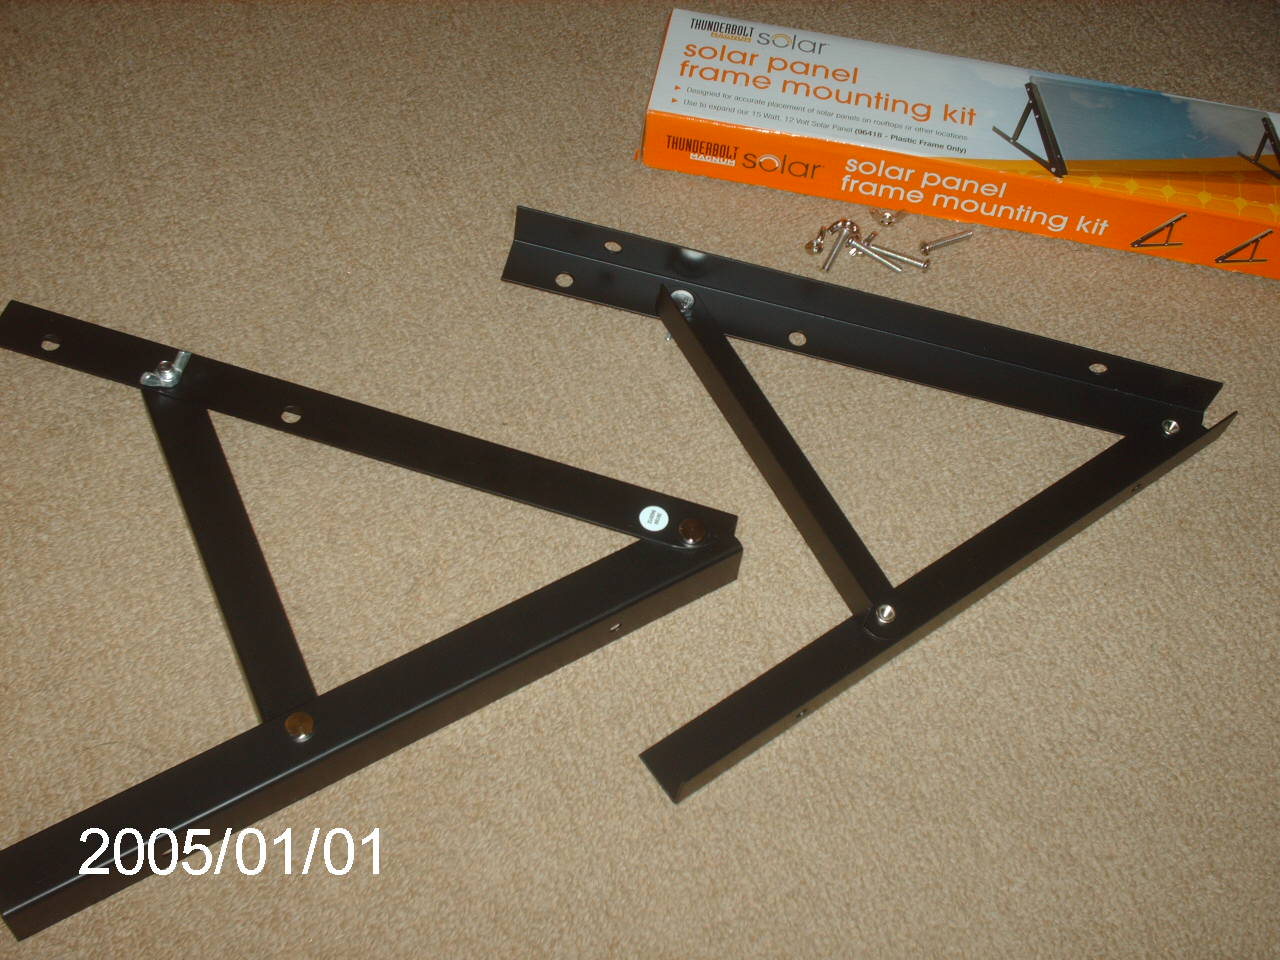 Diy Solar Panel Mount 21 Adjustable Angled Mounts Diy Northernarizona